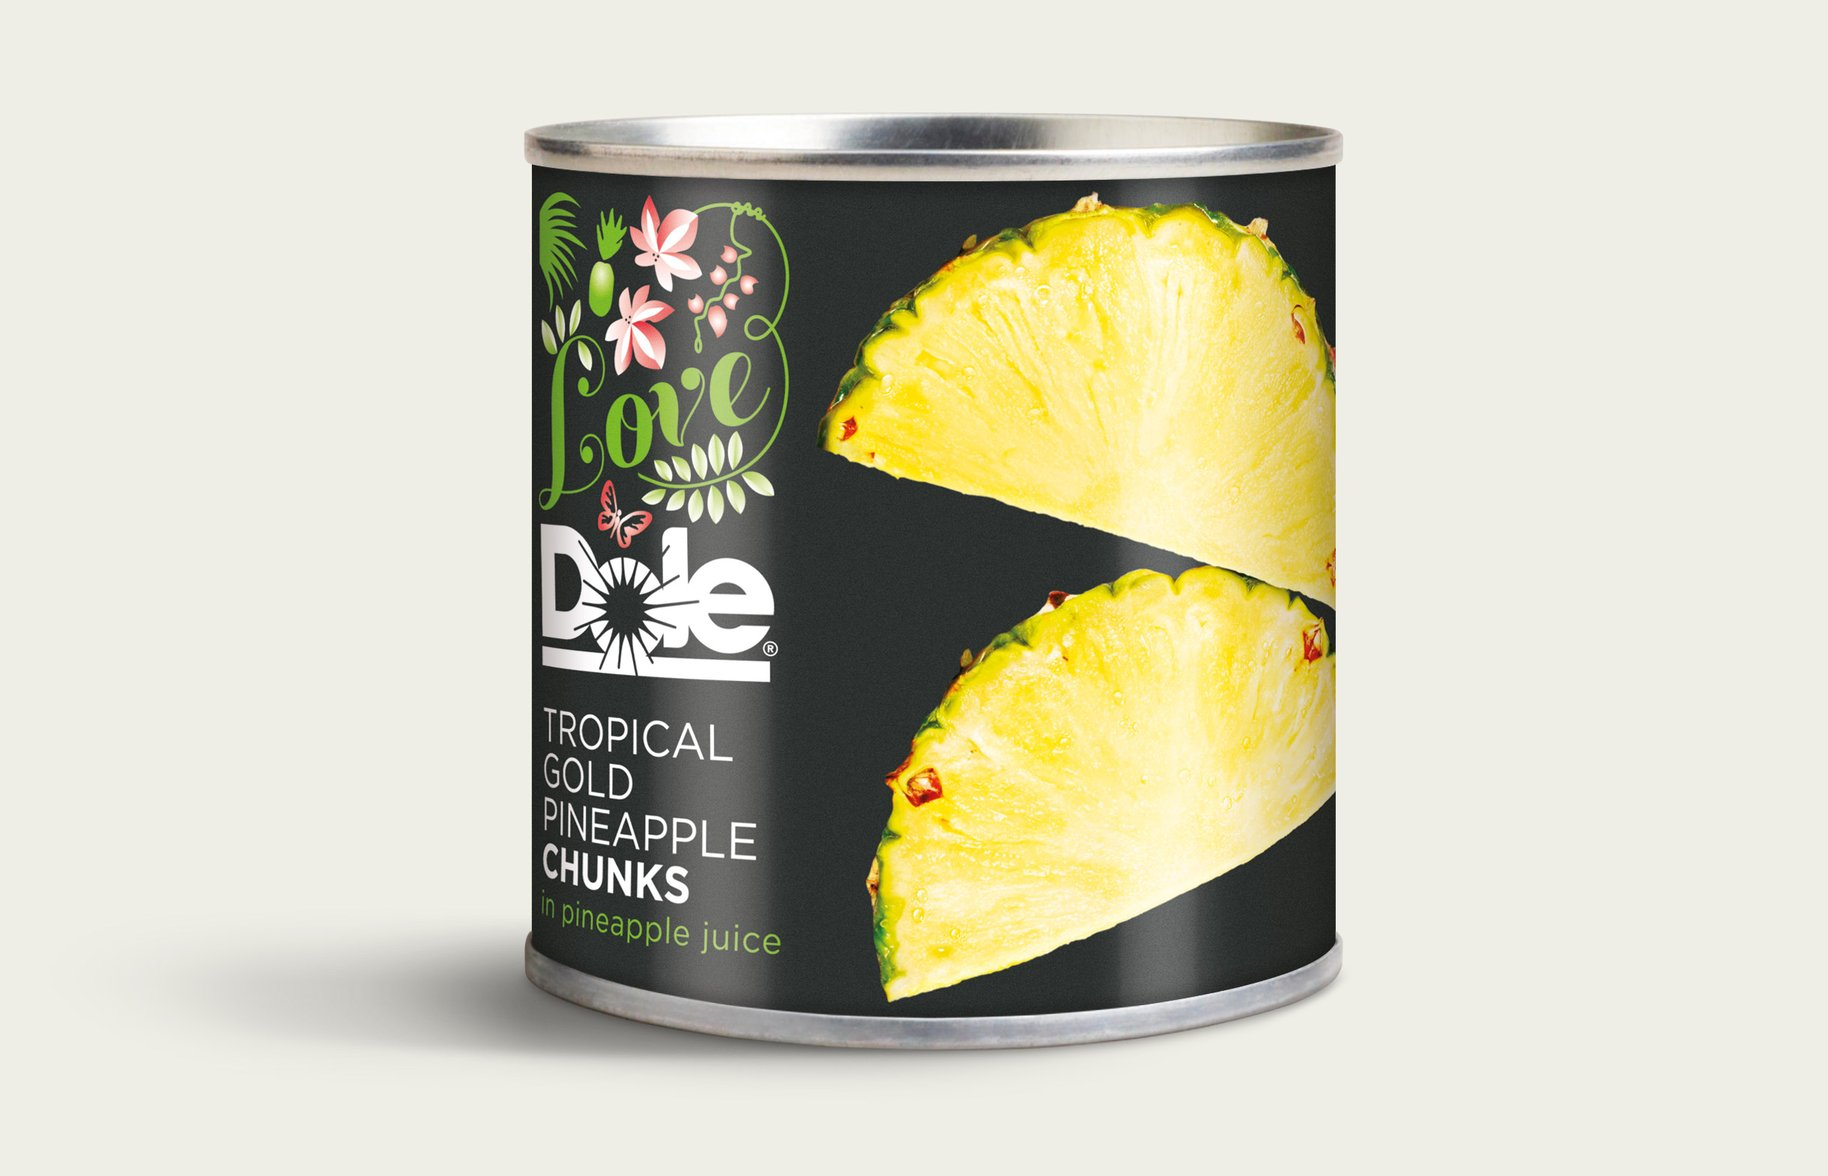 Dole Tinned Pineapple chunks Packaging Design